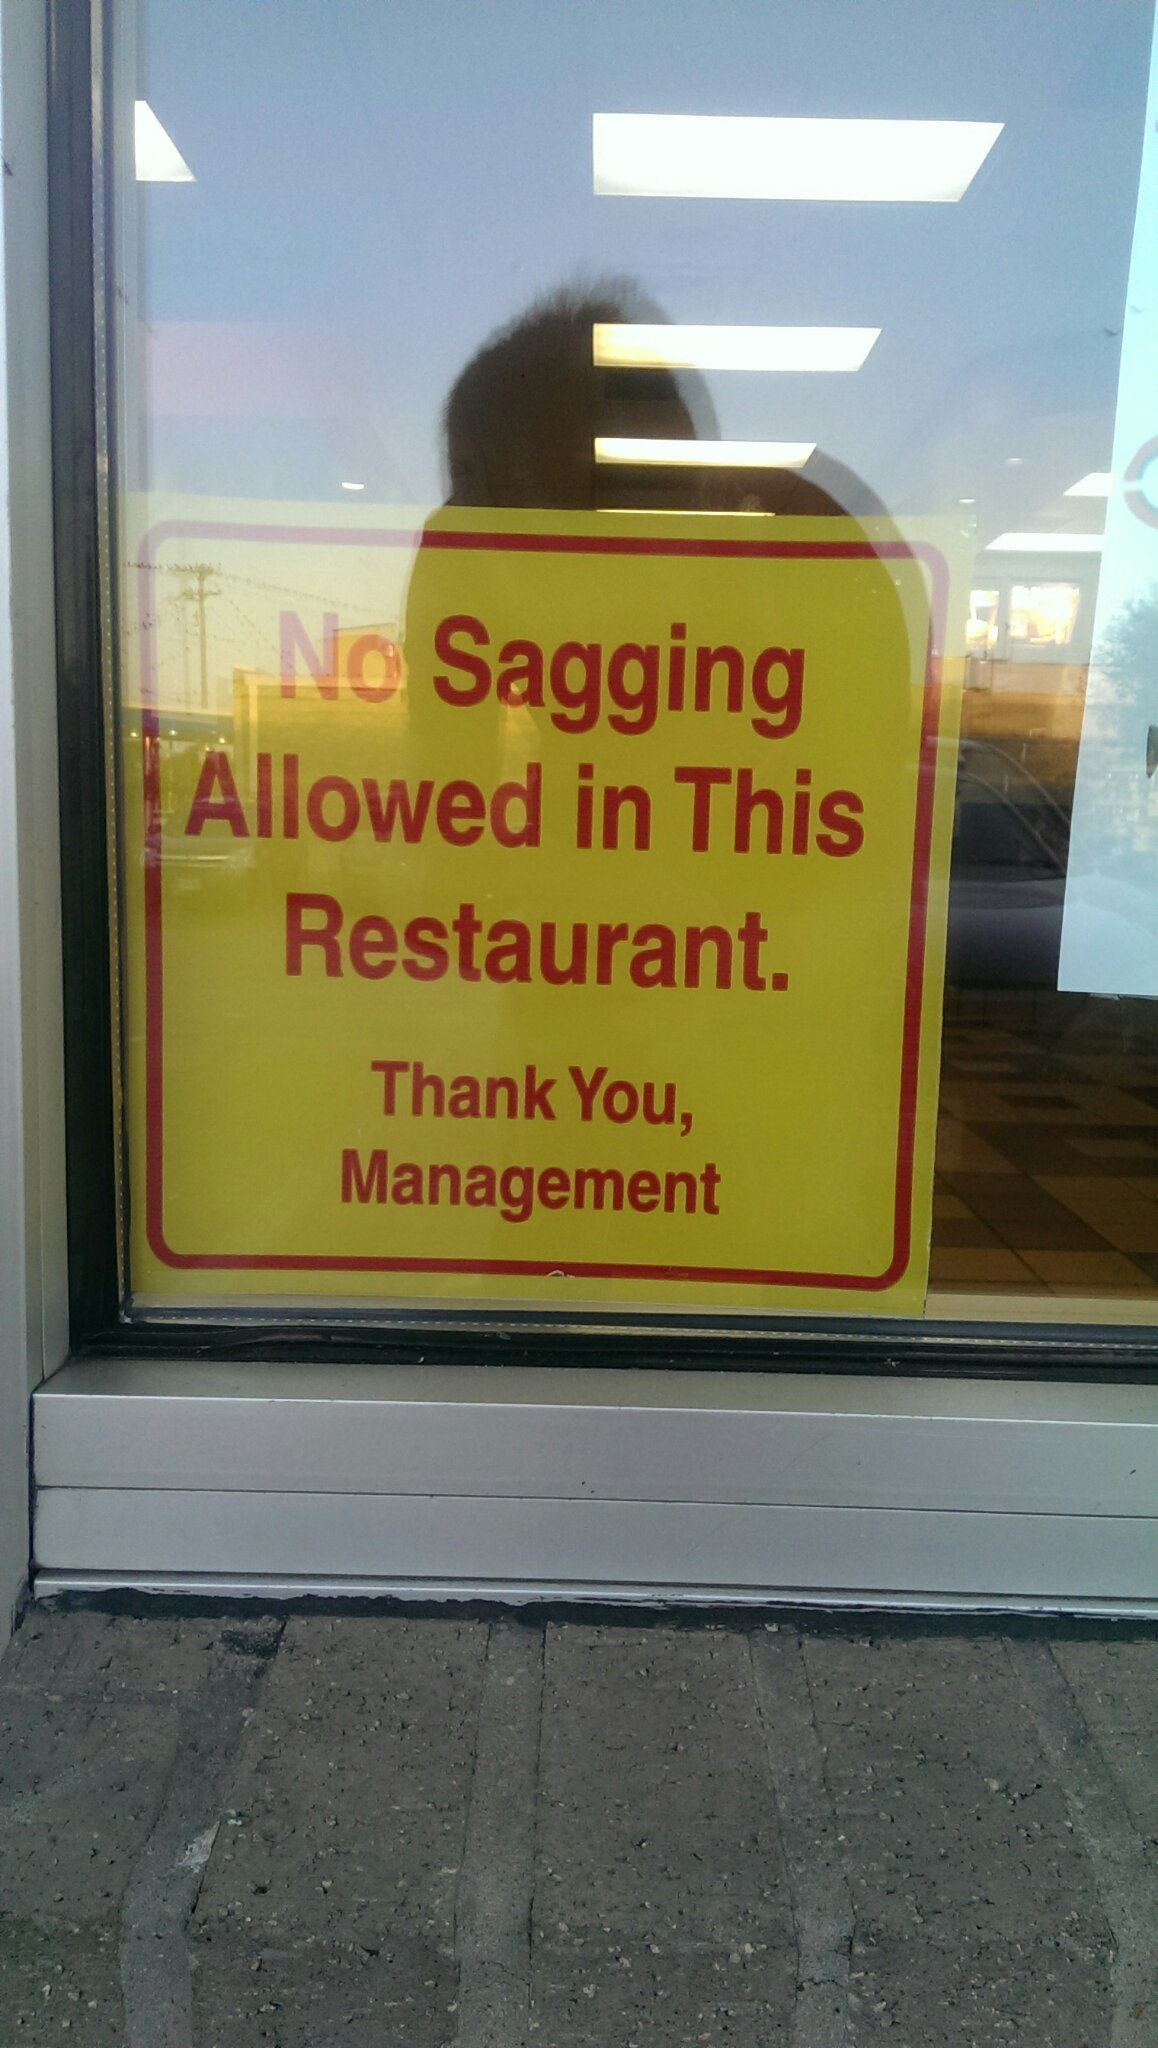 The fact that this sign even had to be put up!